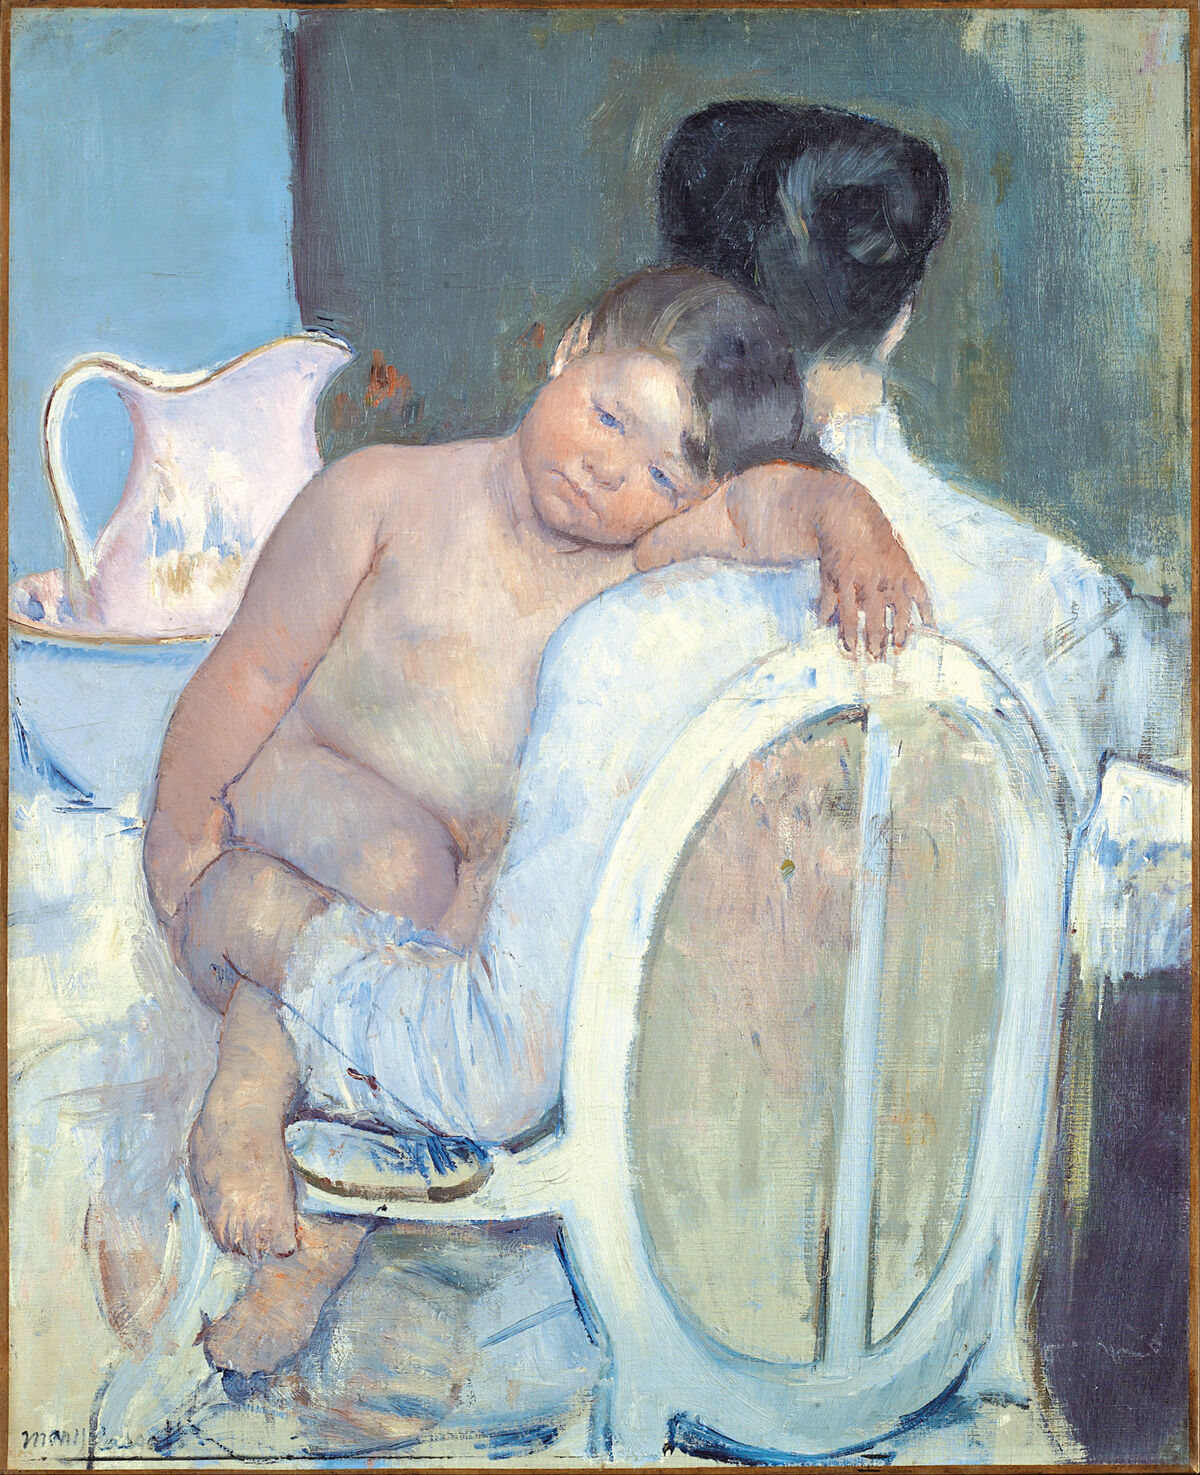 Mary Cassatt, Woman Sitting with a Child in Her Arms, 1890. Image via Wikimedia Commons.